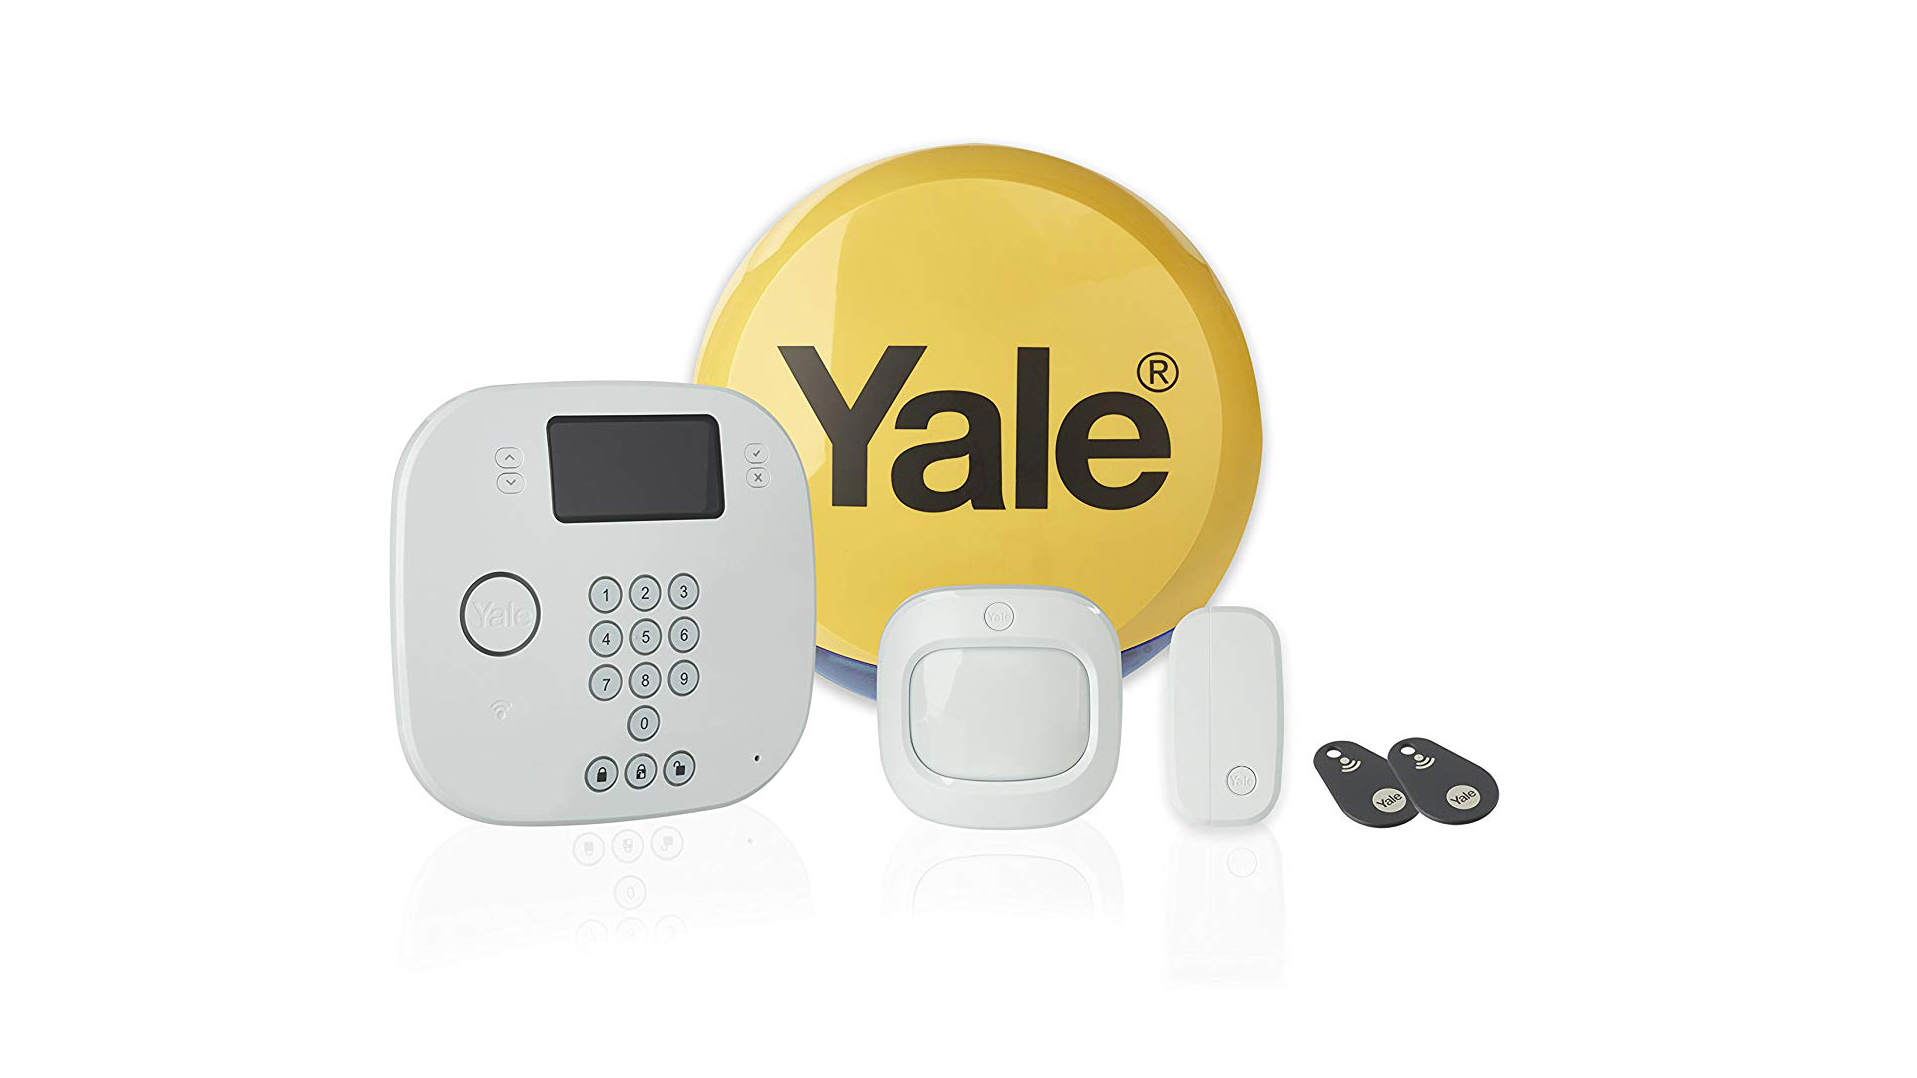 Best Garage And Shed Alarms Secure Your Or From 758 Burglar Alarm Powered By Battery Yale To Is Like Hoover Vacuum Cleaners So You Wont Be Surprised Learn That The Level Of Detail On This Impressive Yet